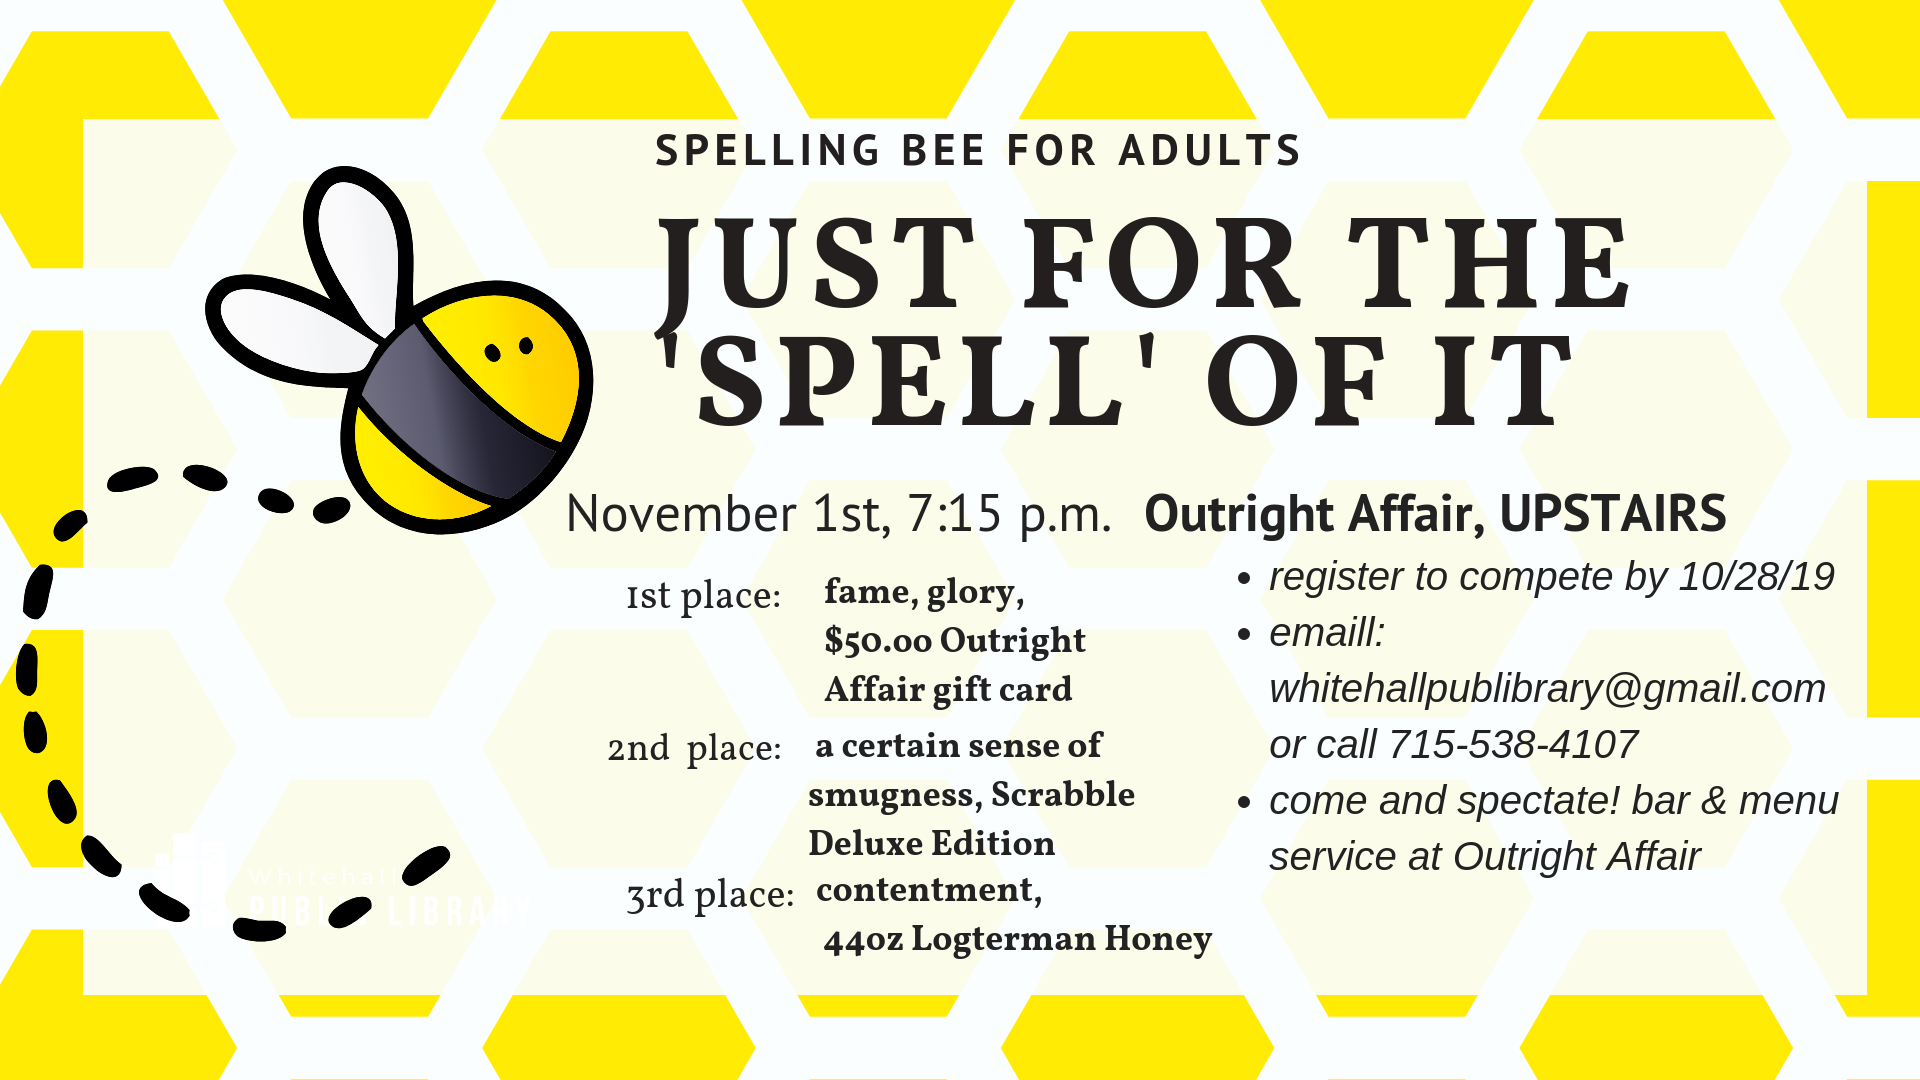 Spelling Bee for Adults ad